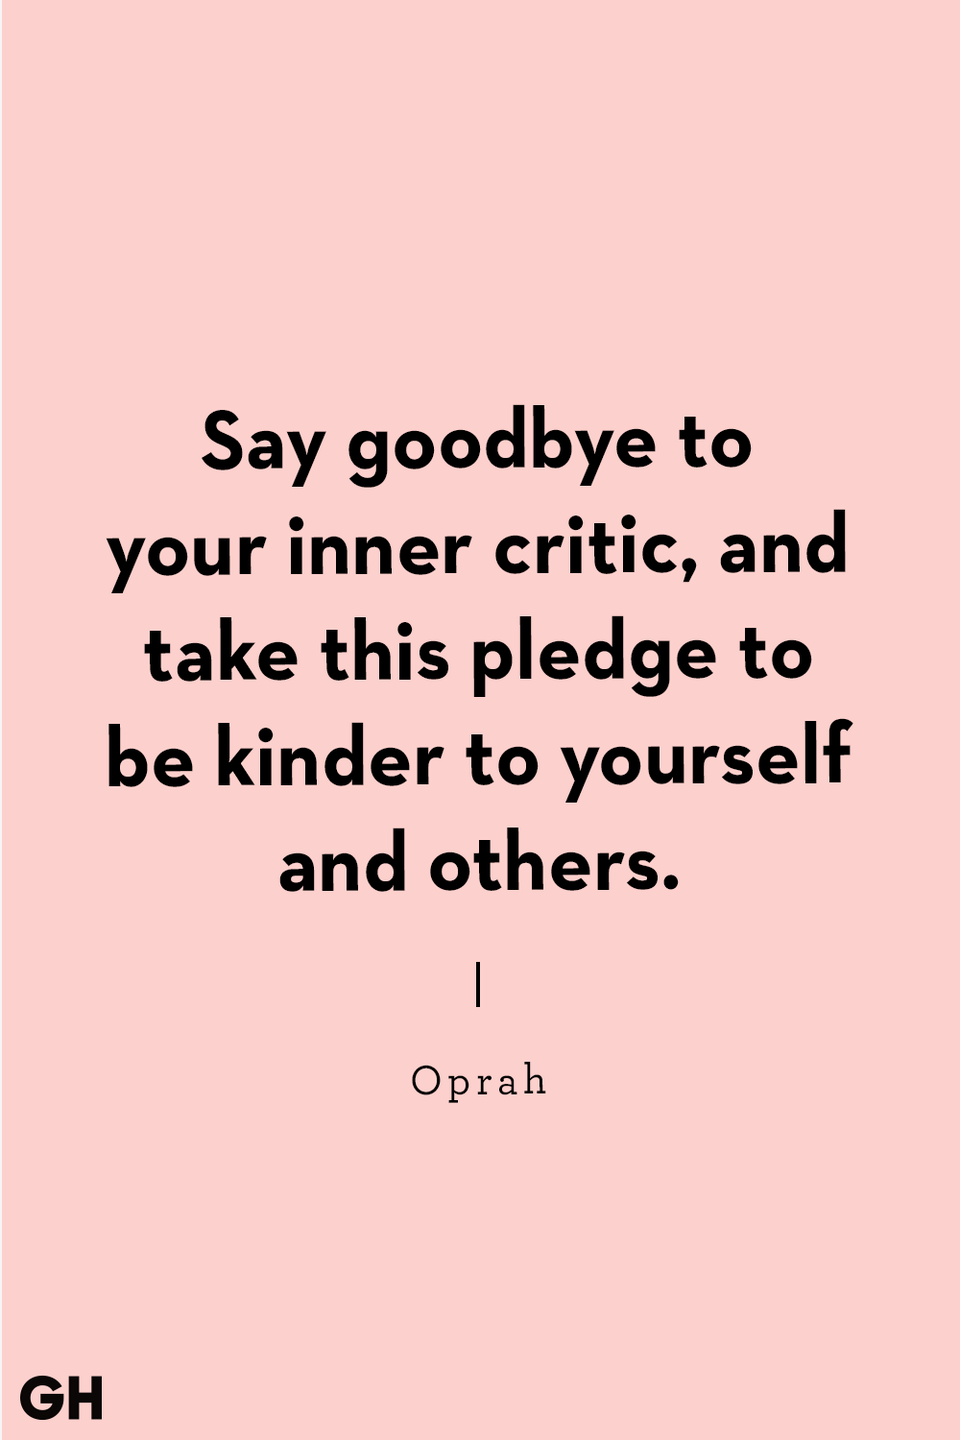 "<p>""Say goodbye to your inner critic, and take this pledge to be kinder to yourself and others.""</p>"